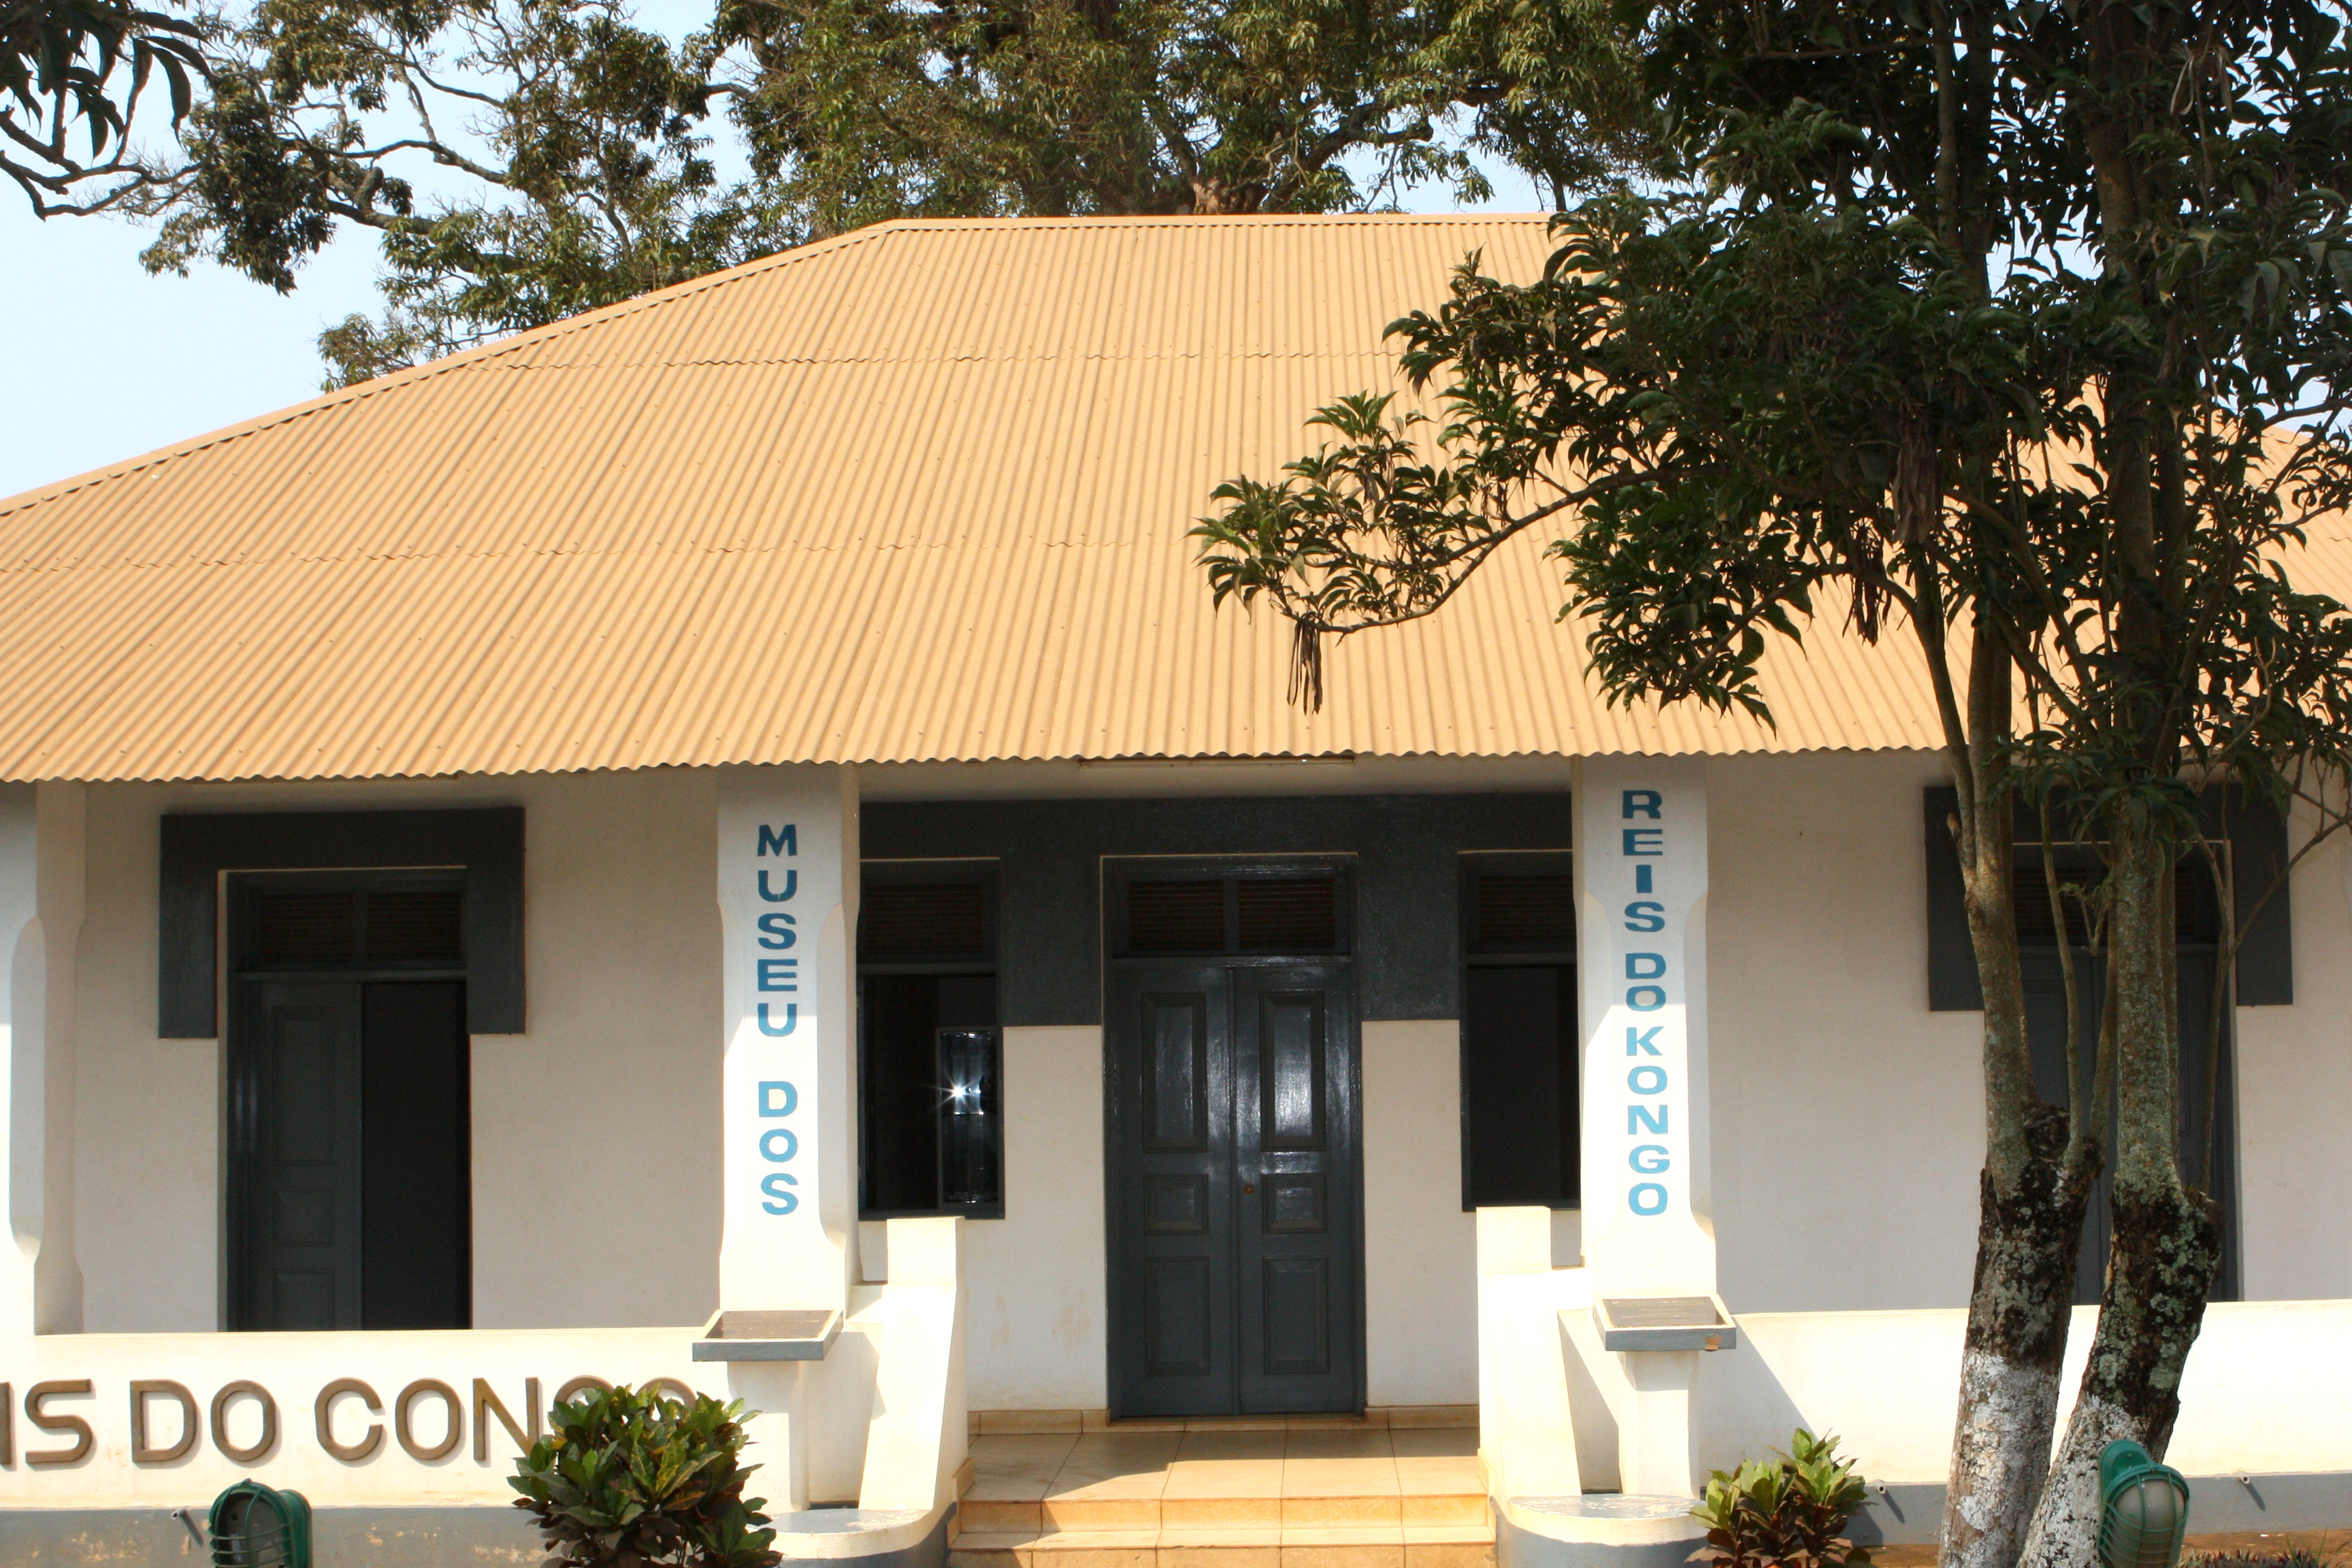 Museu Dos Reis Do Congo na província do Zaire